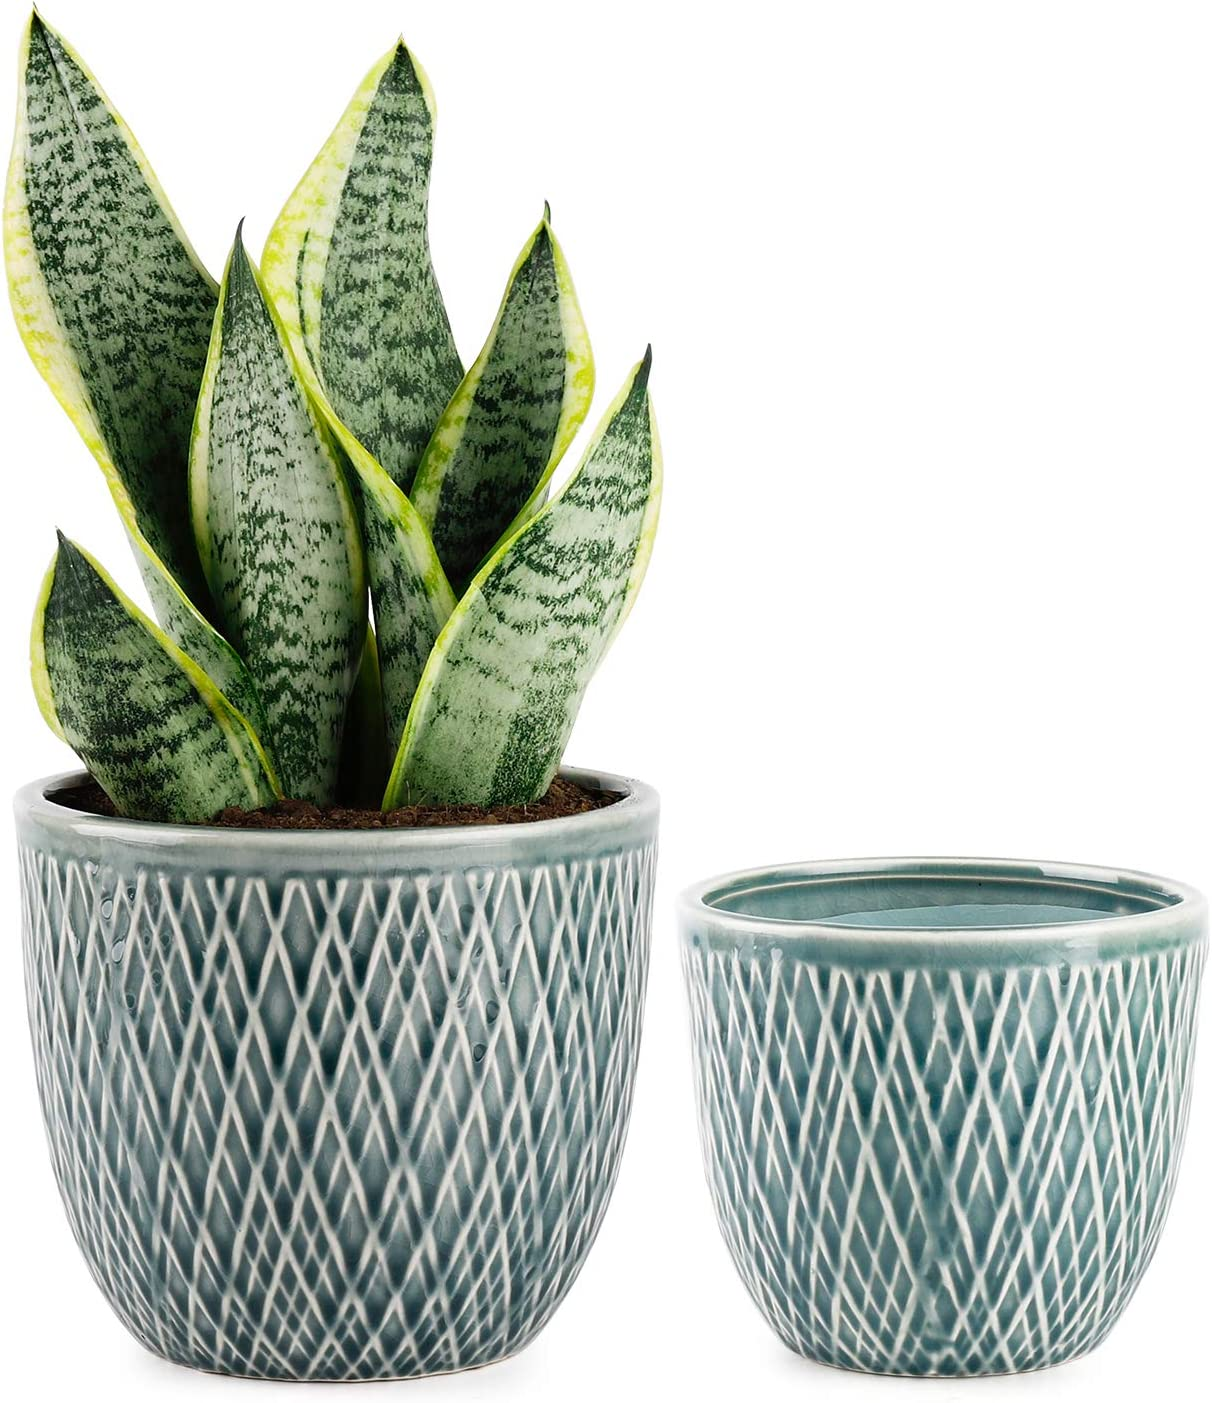 Greenaholics Plaid Ceramic Planters 4.7 5.9 Inch Plant Pots with Drain Hole Flower Plant Pots for Indoor Decor Blue Set of Two